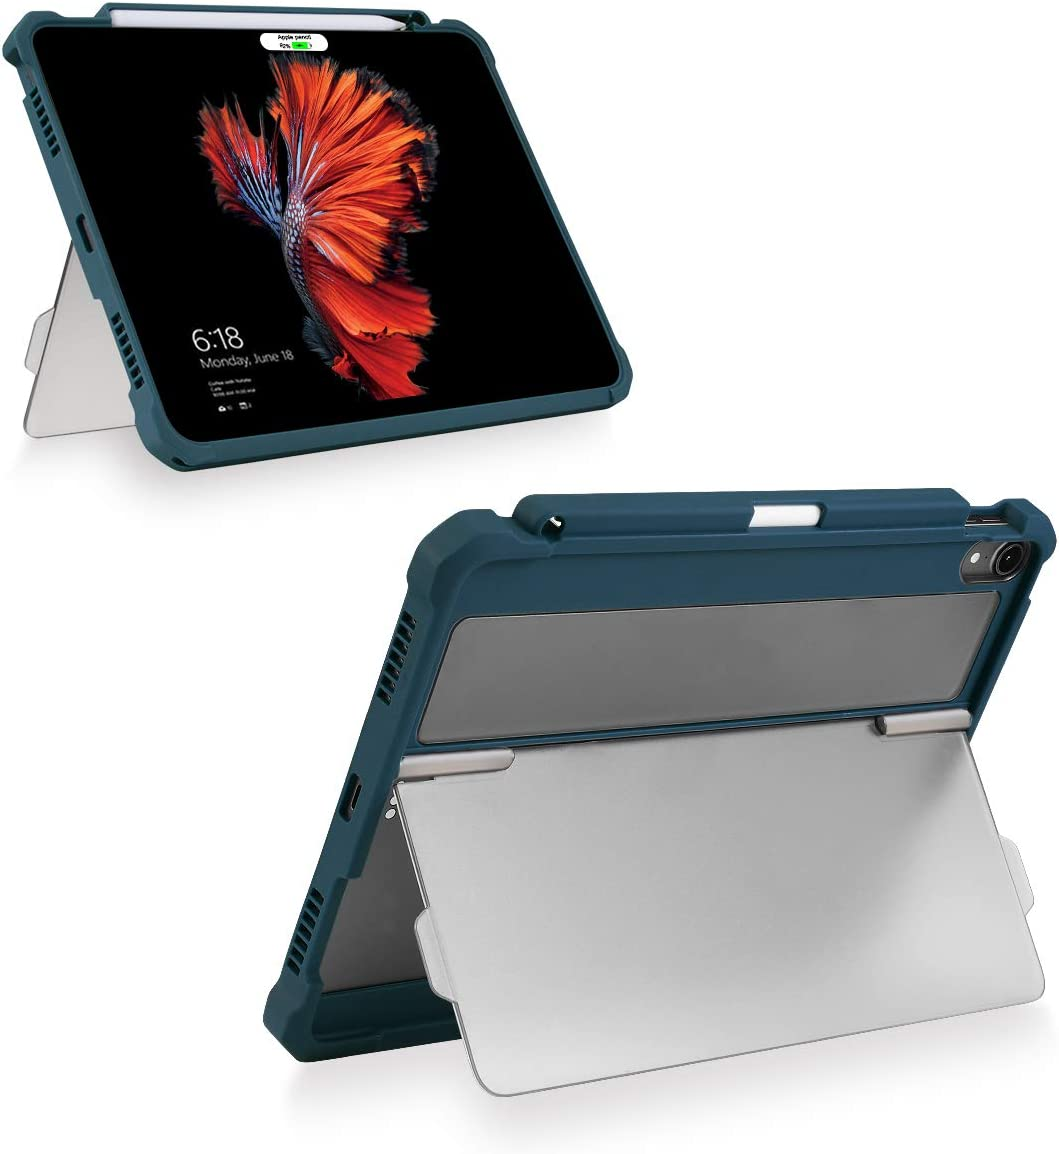 """Valkit iPad 9.7 Case 2018/2017 iPad 6th/5th Generation Case,iPad Air Case, iPad Air 2 Cover, iPad Pro 9.7 Case, Protective Smart Stand Rugged Armor Cases with Apple Pencil Holder for iPad 9.7"""", Blue"""